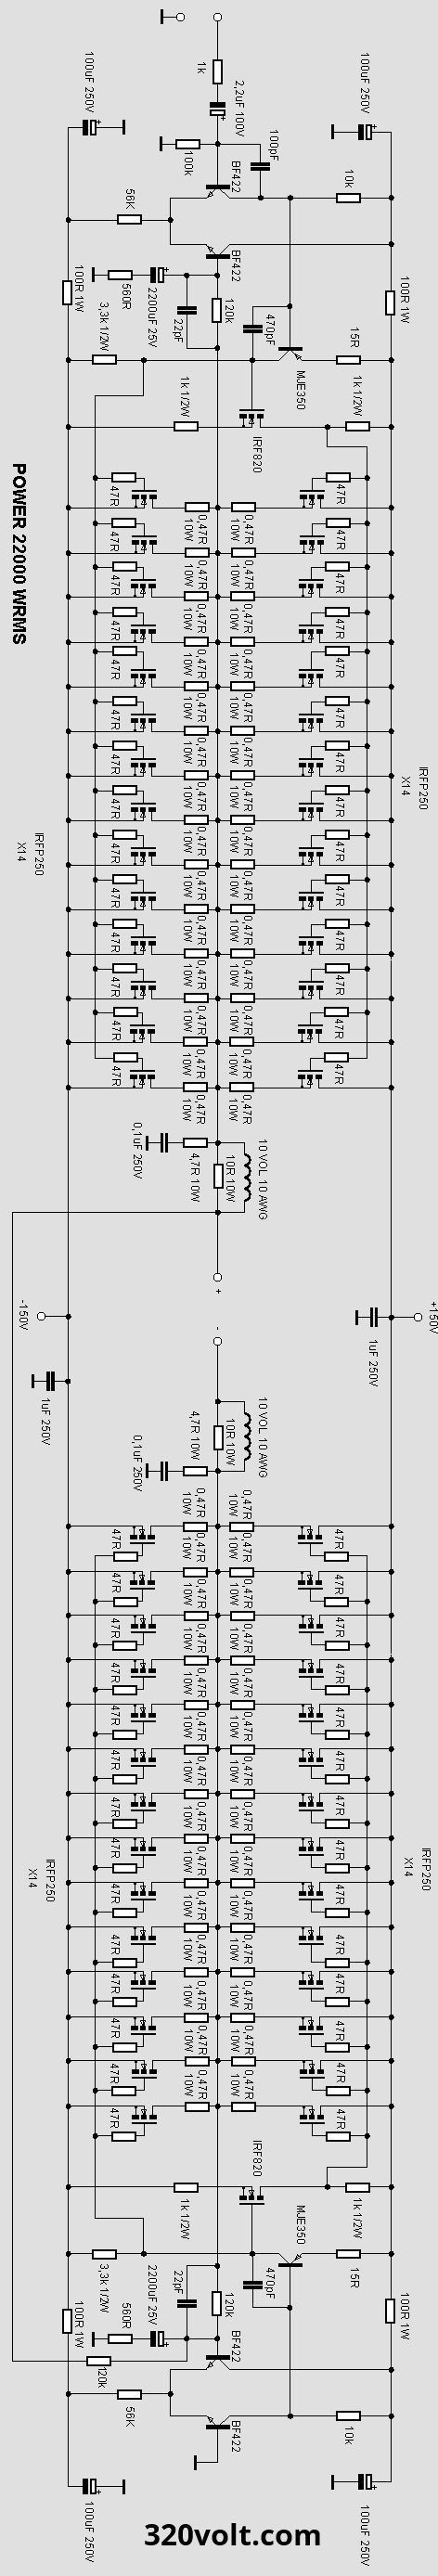 Yamaha Power Amplifier Pcb Layout Pcb Circuits